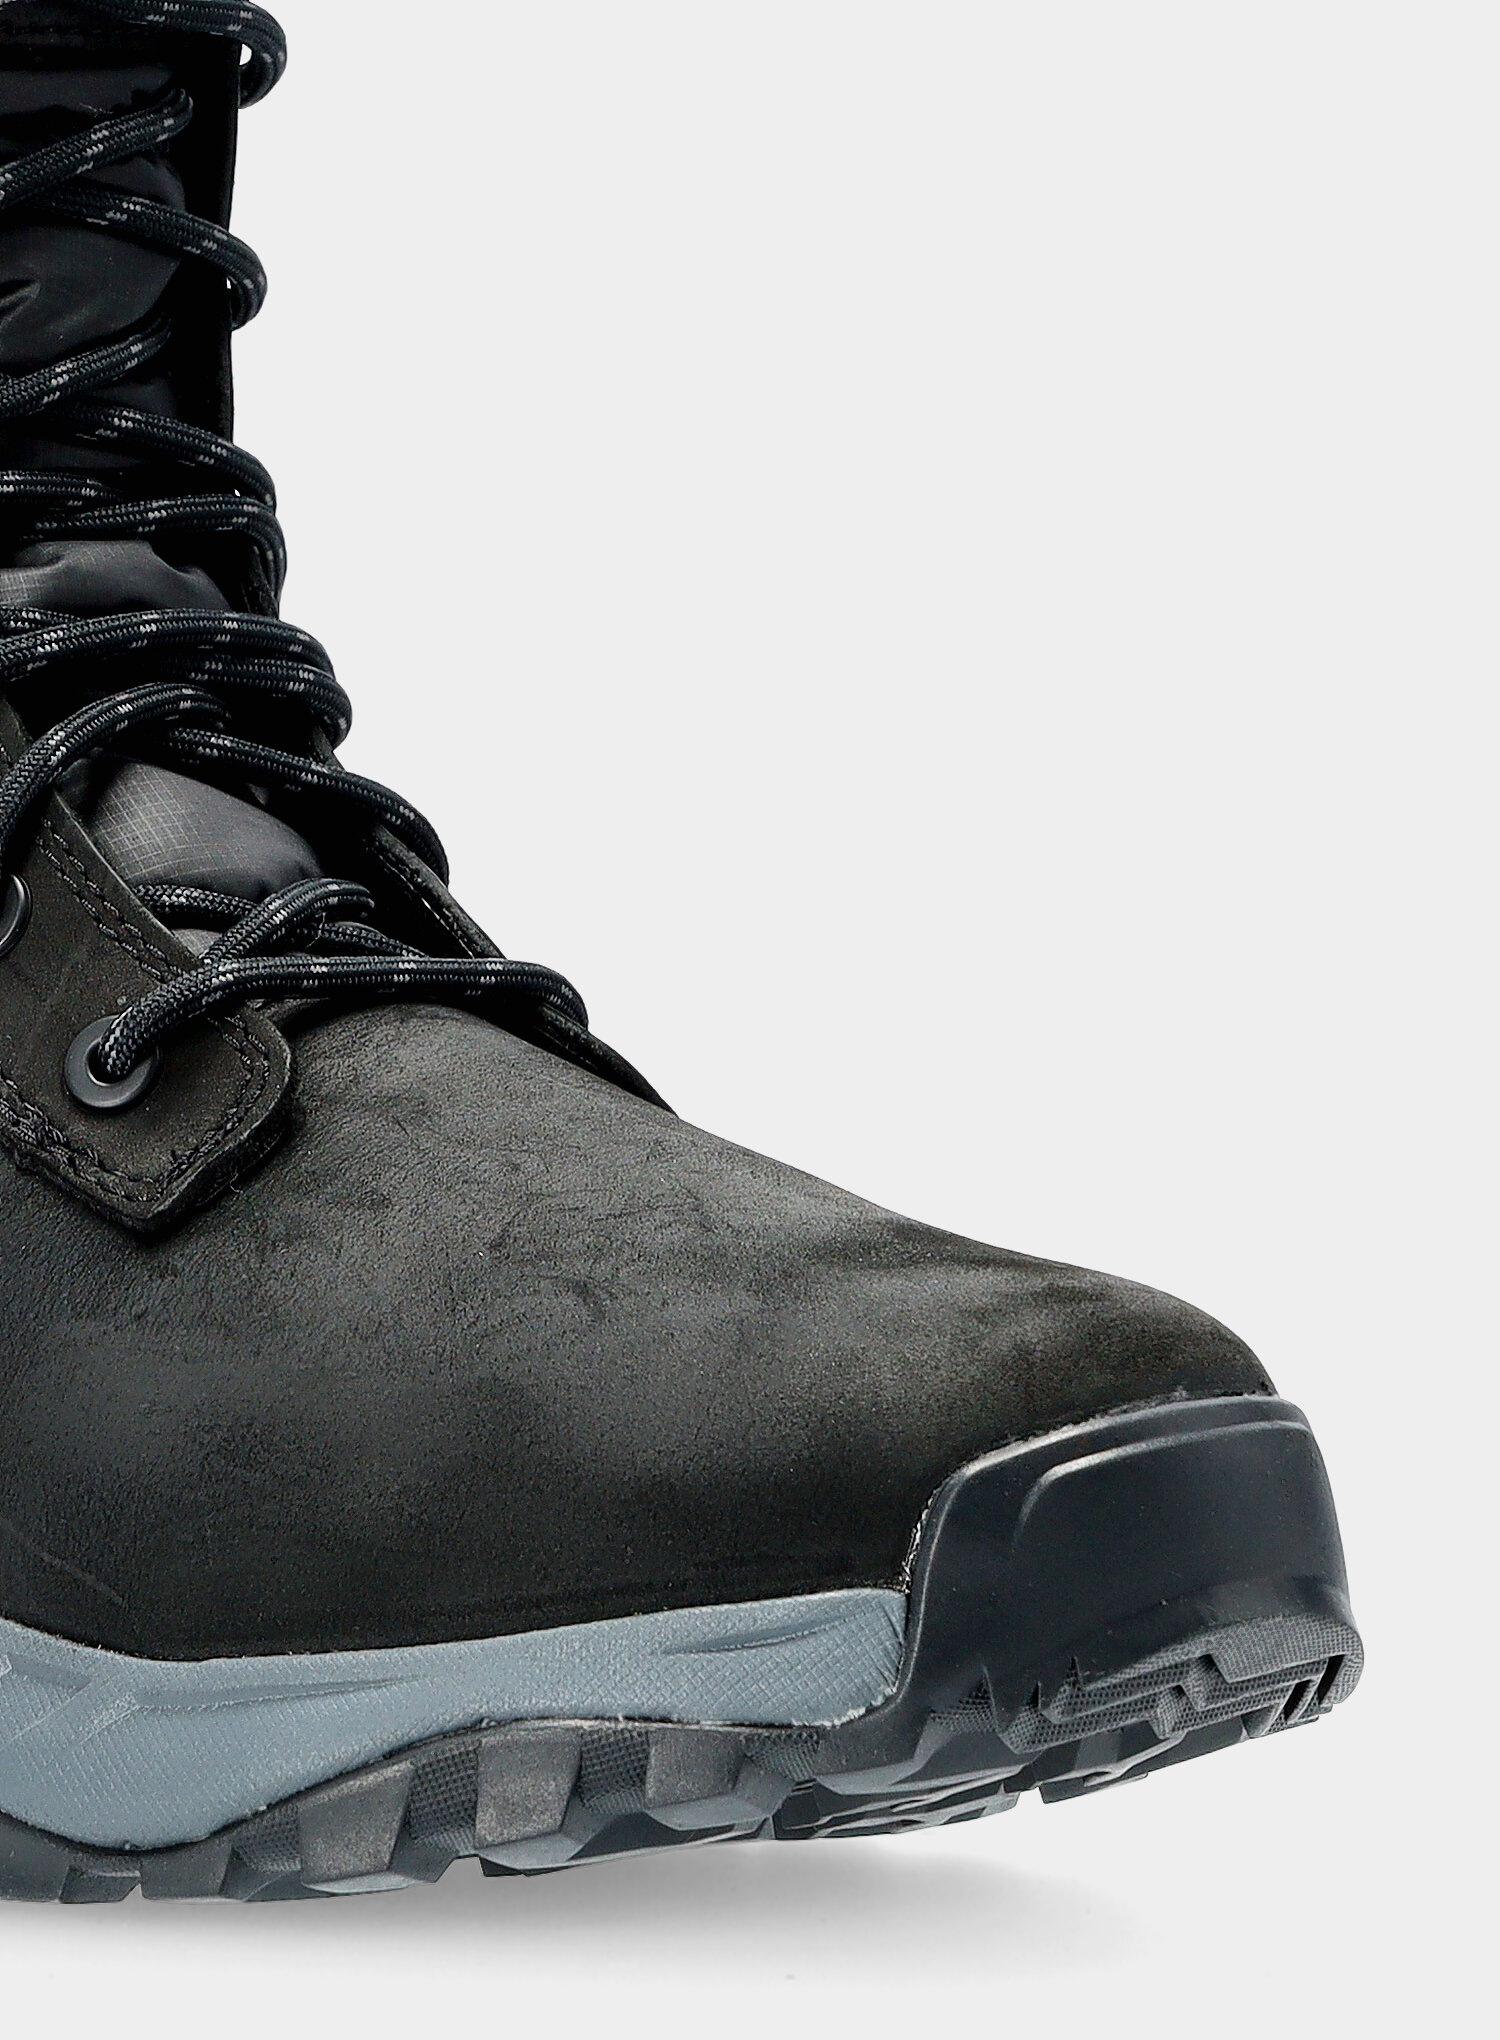 Buty The North Face Thermoball Boot Zip-Up - tnf black/zinc grey - zdjęcie nr. 6